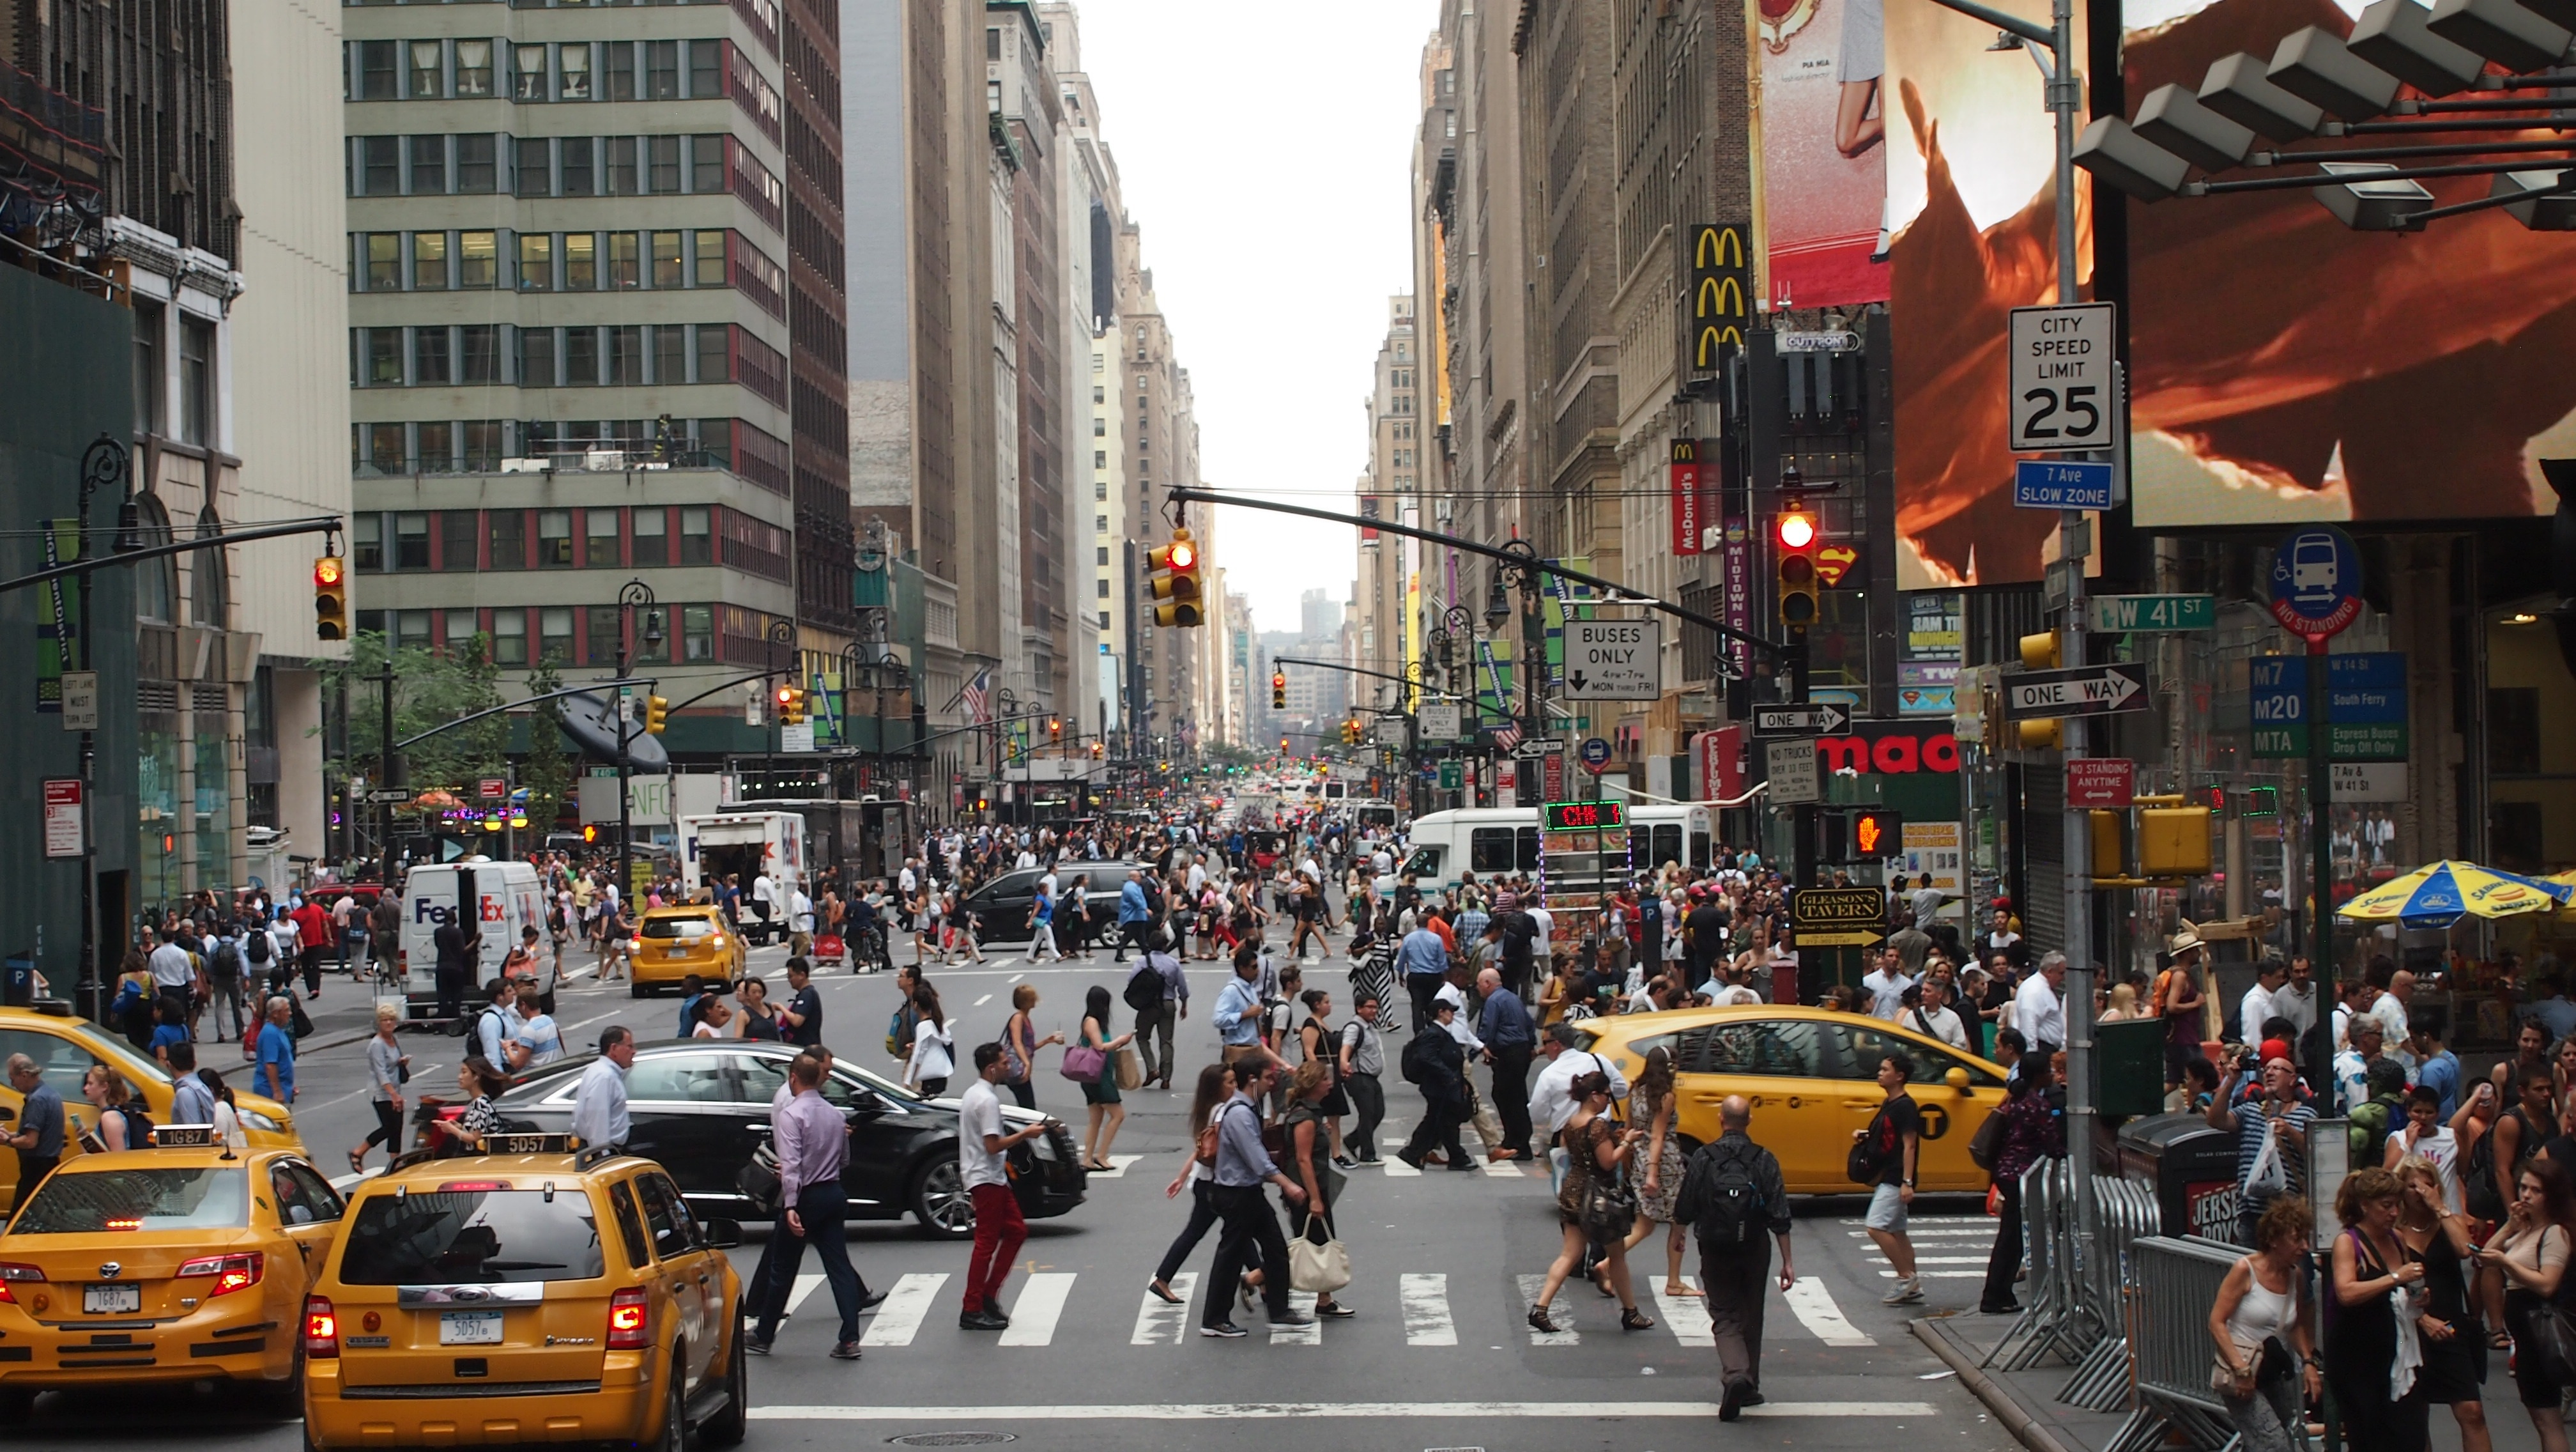 NYC traffic and pedestrians